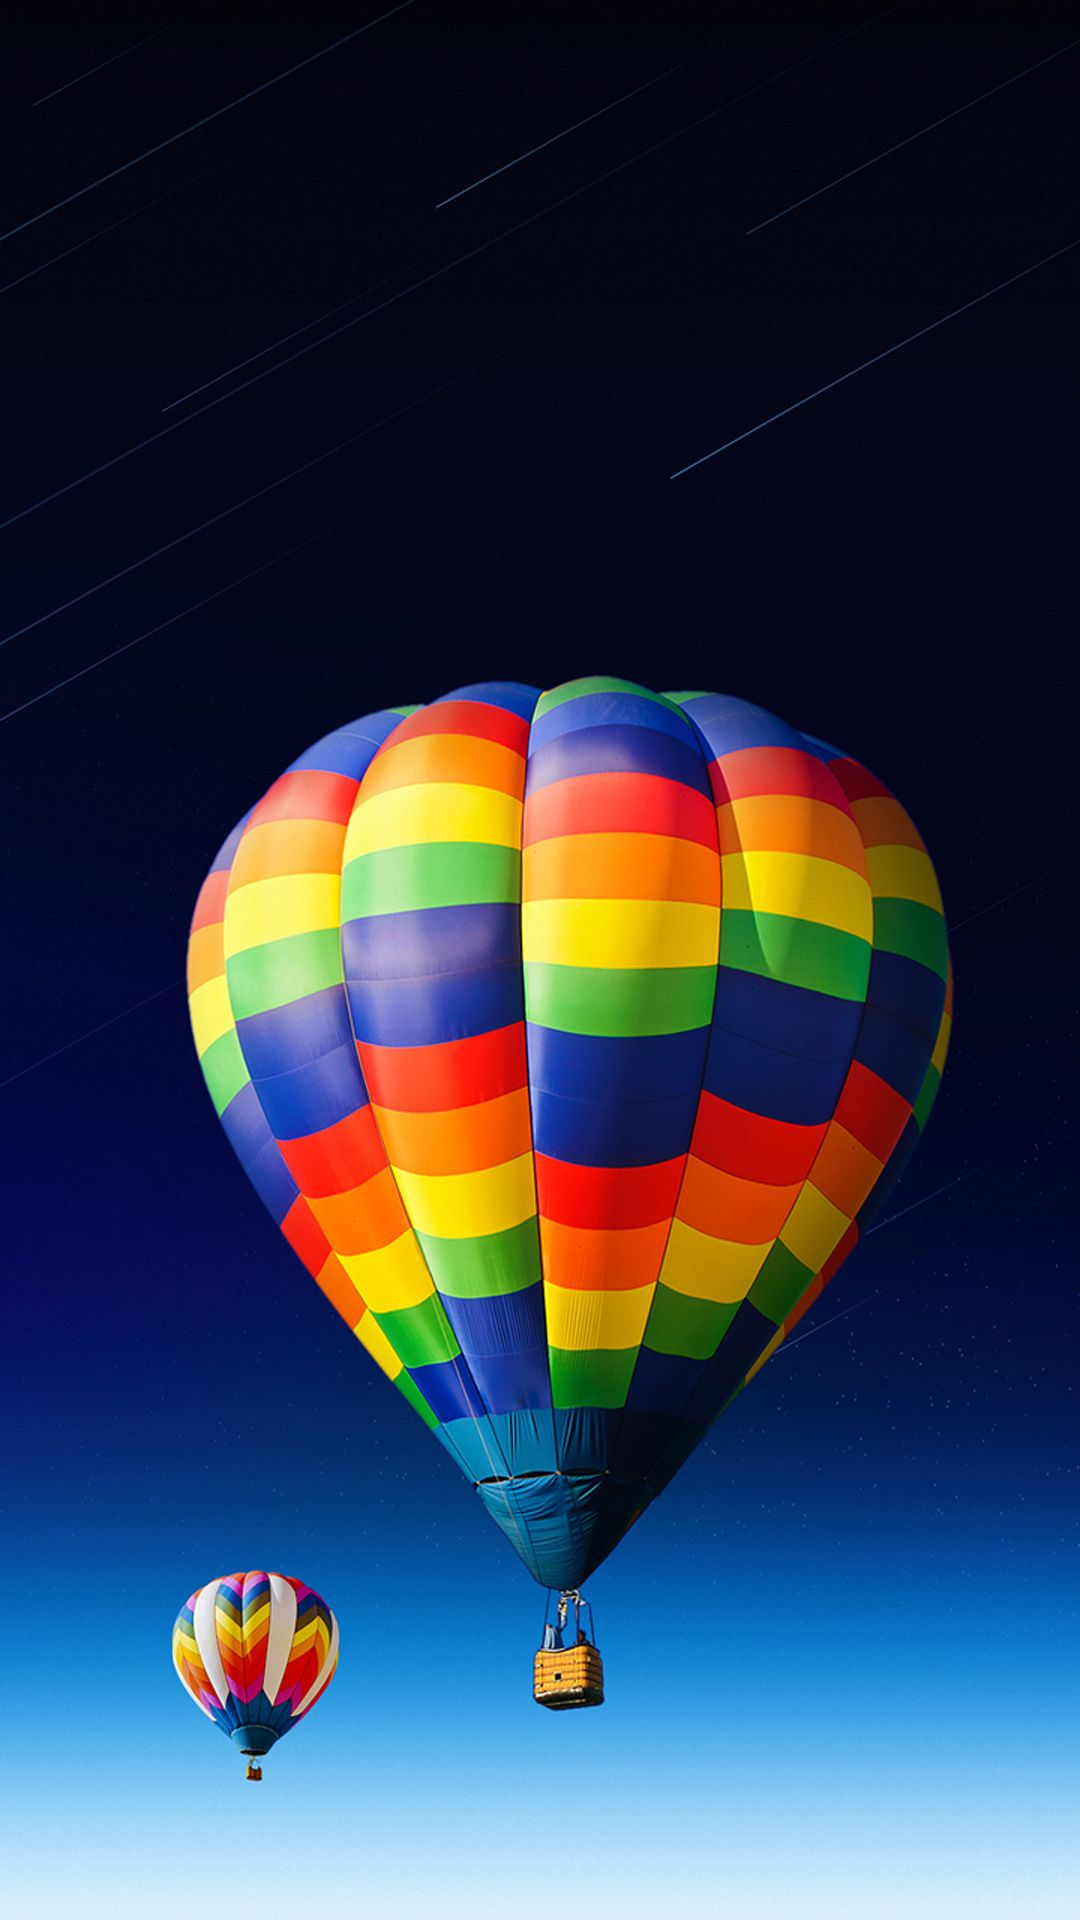 Balloon Wallpapers Top Free Balloon Backgrounds